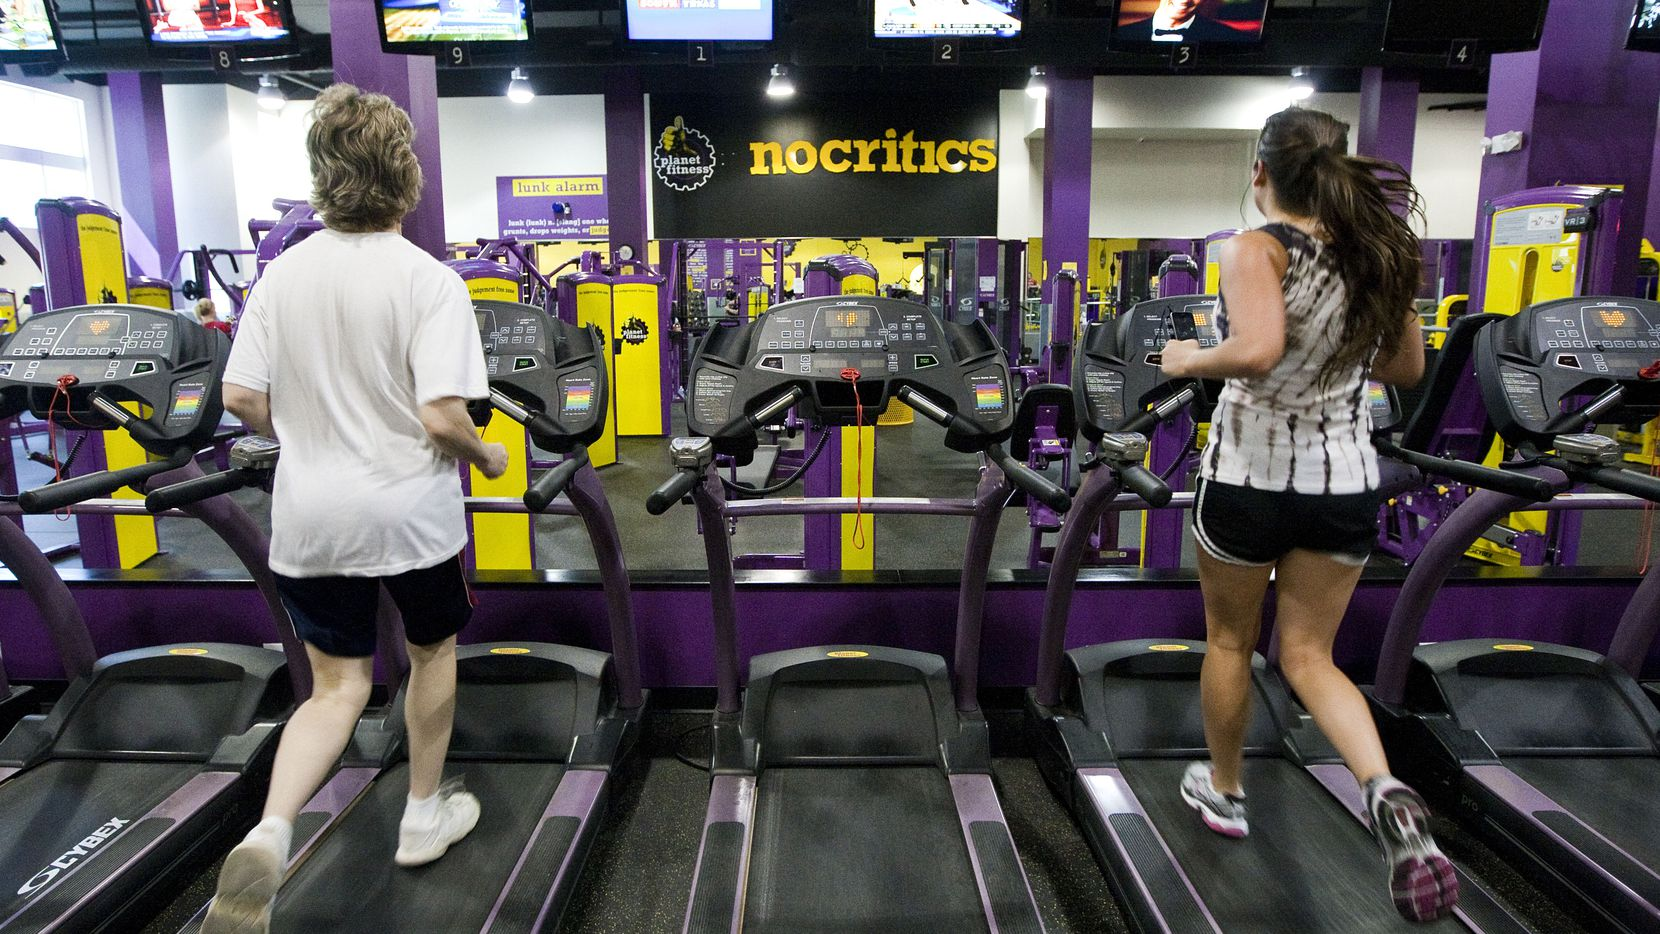 What S The Best Gym For Singles For Classes Vote For Your Favorites In Our Best In Dfw Fitness Reader S Choice Polls